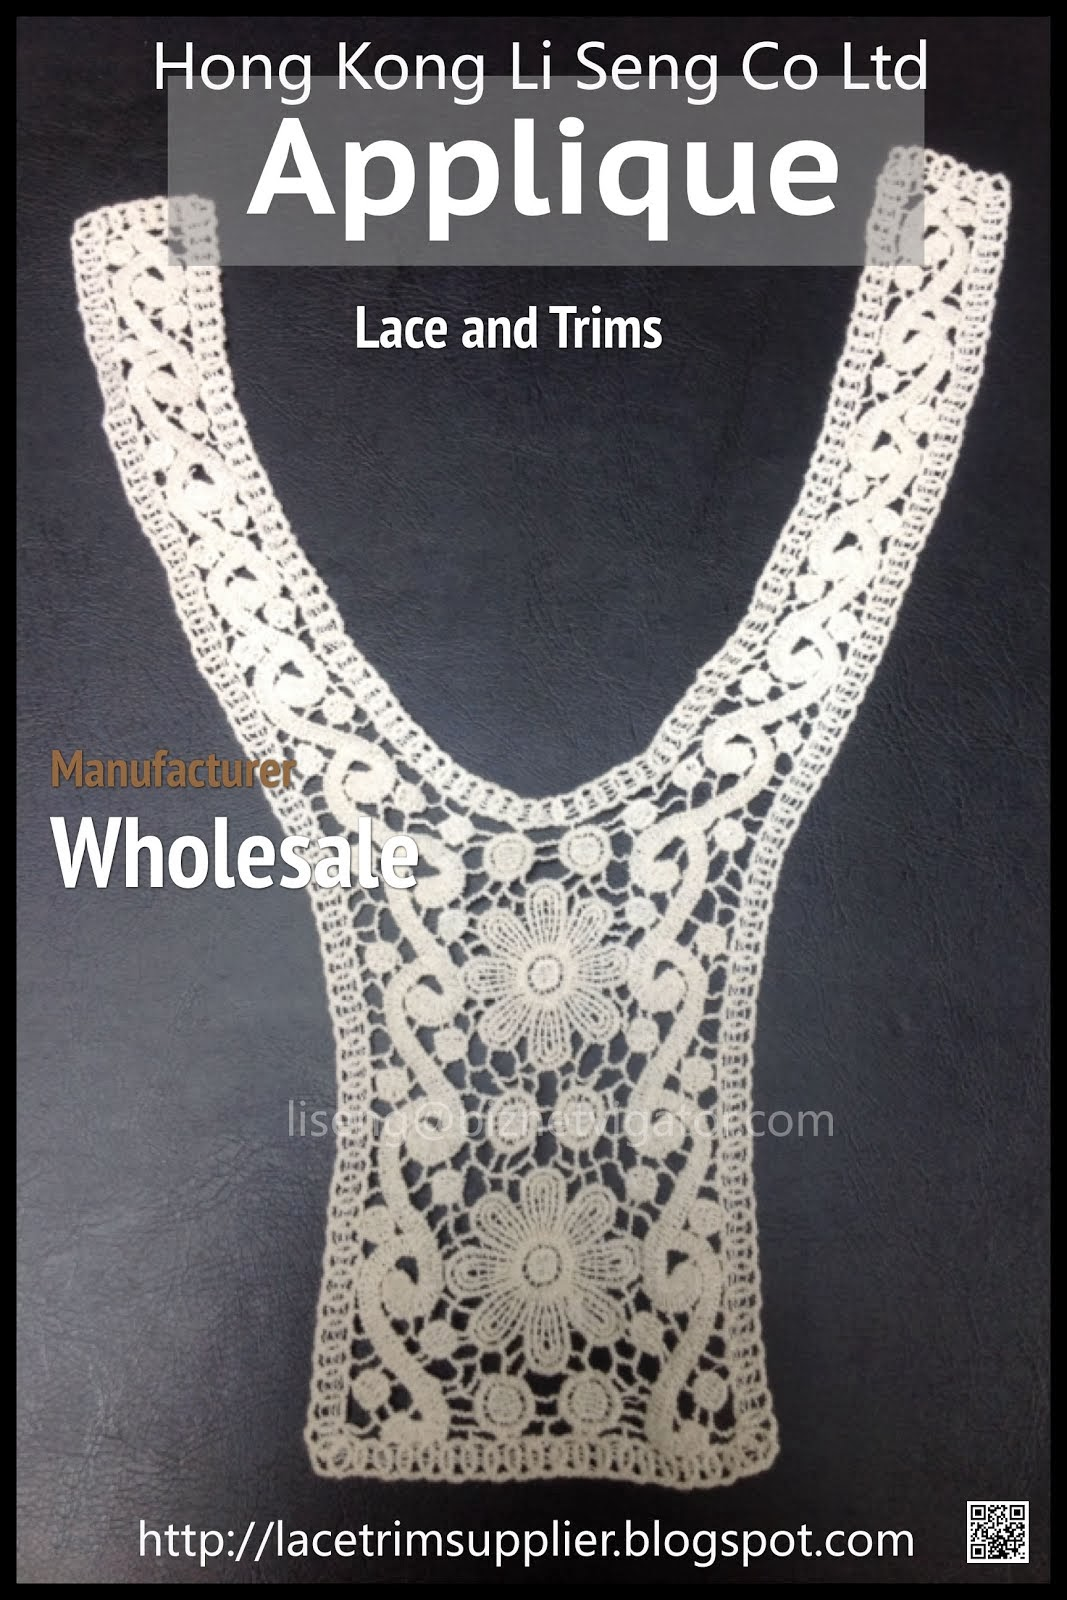 Cotton Lace Applique Manufacturer - Hong Kong Li Seng Co Ltd